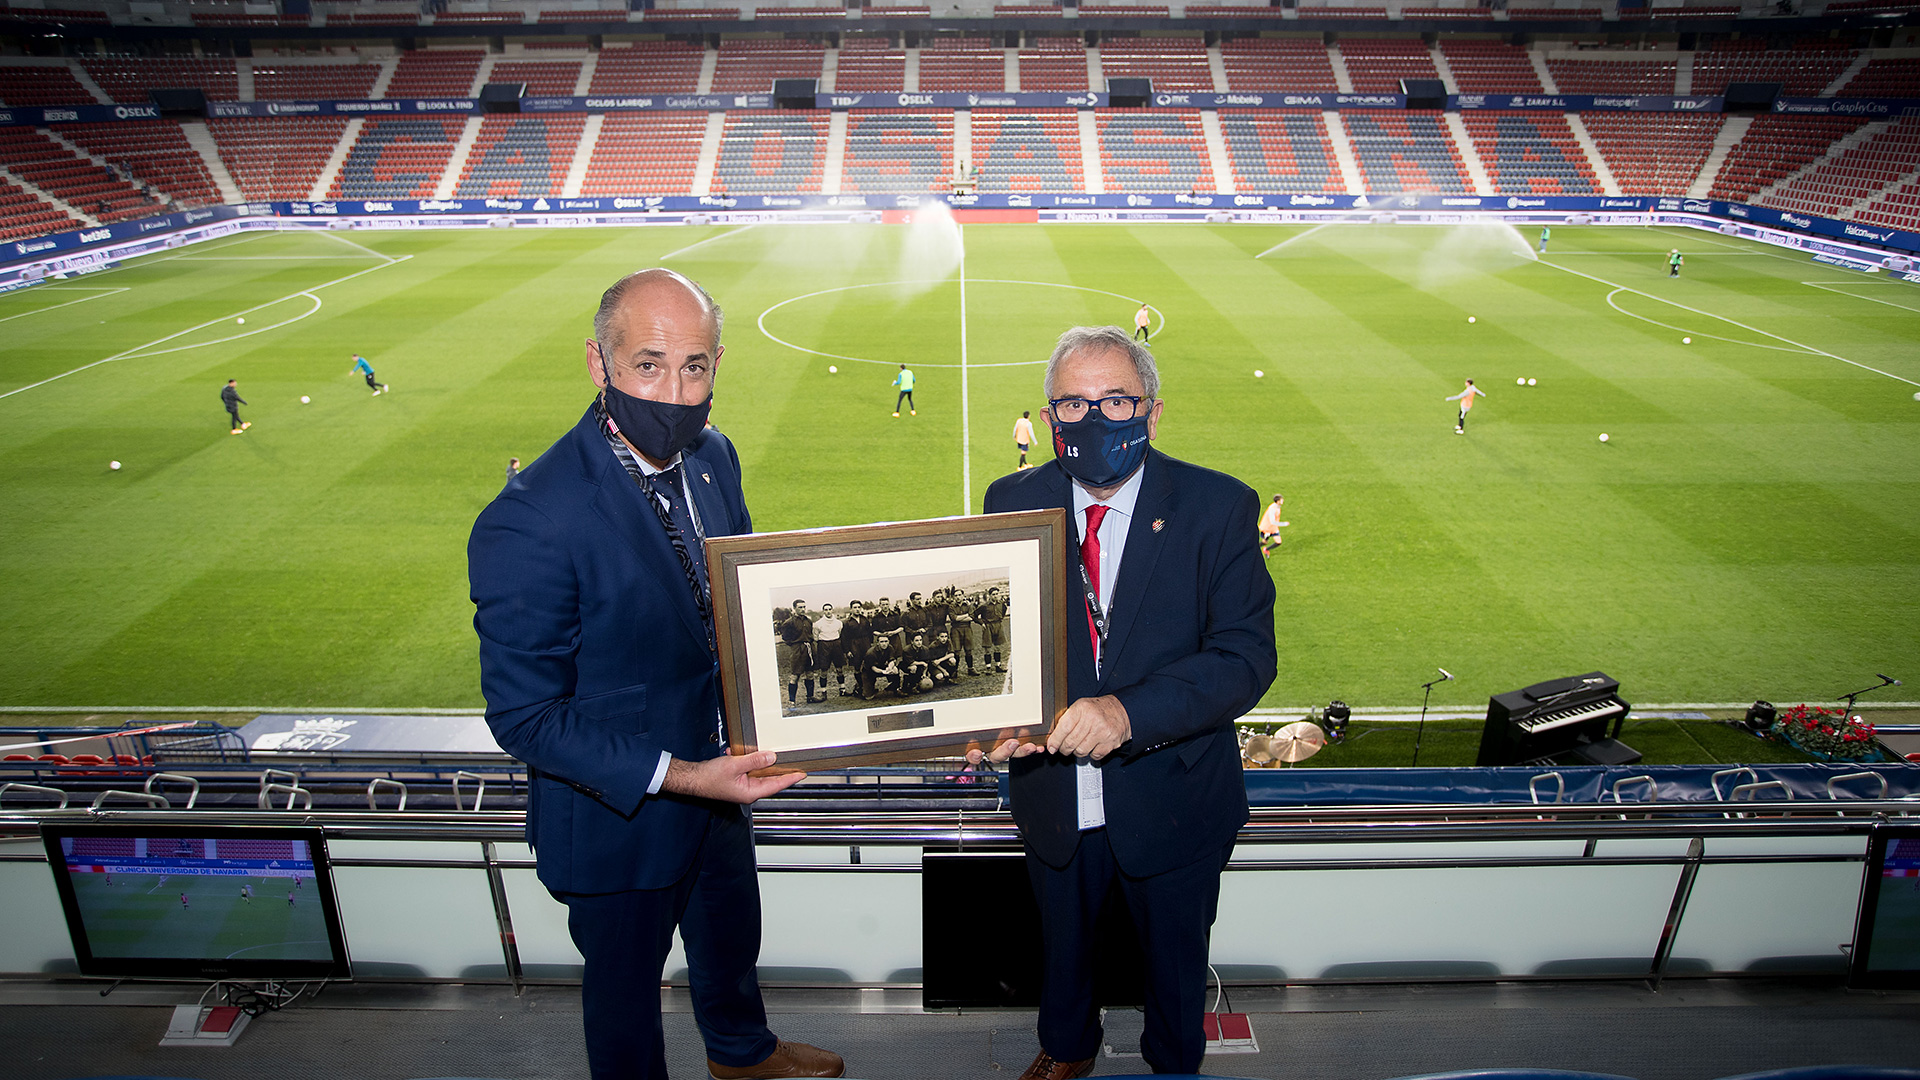 Athletic present Osasuna with a historic photograph